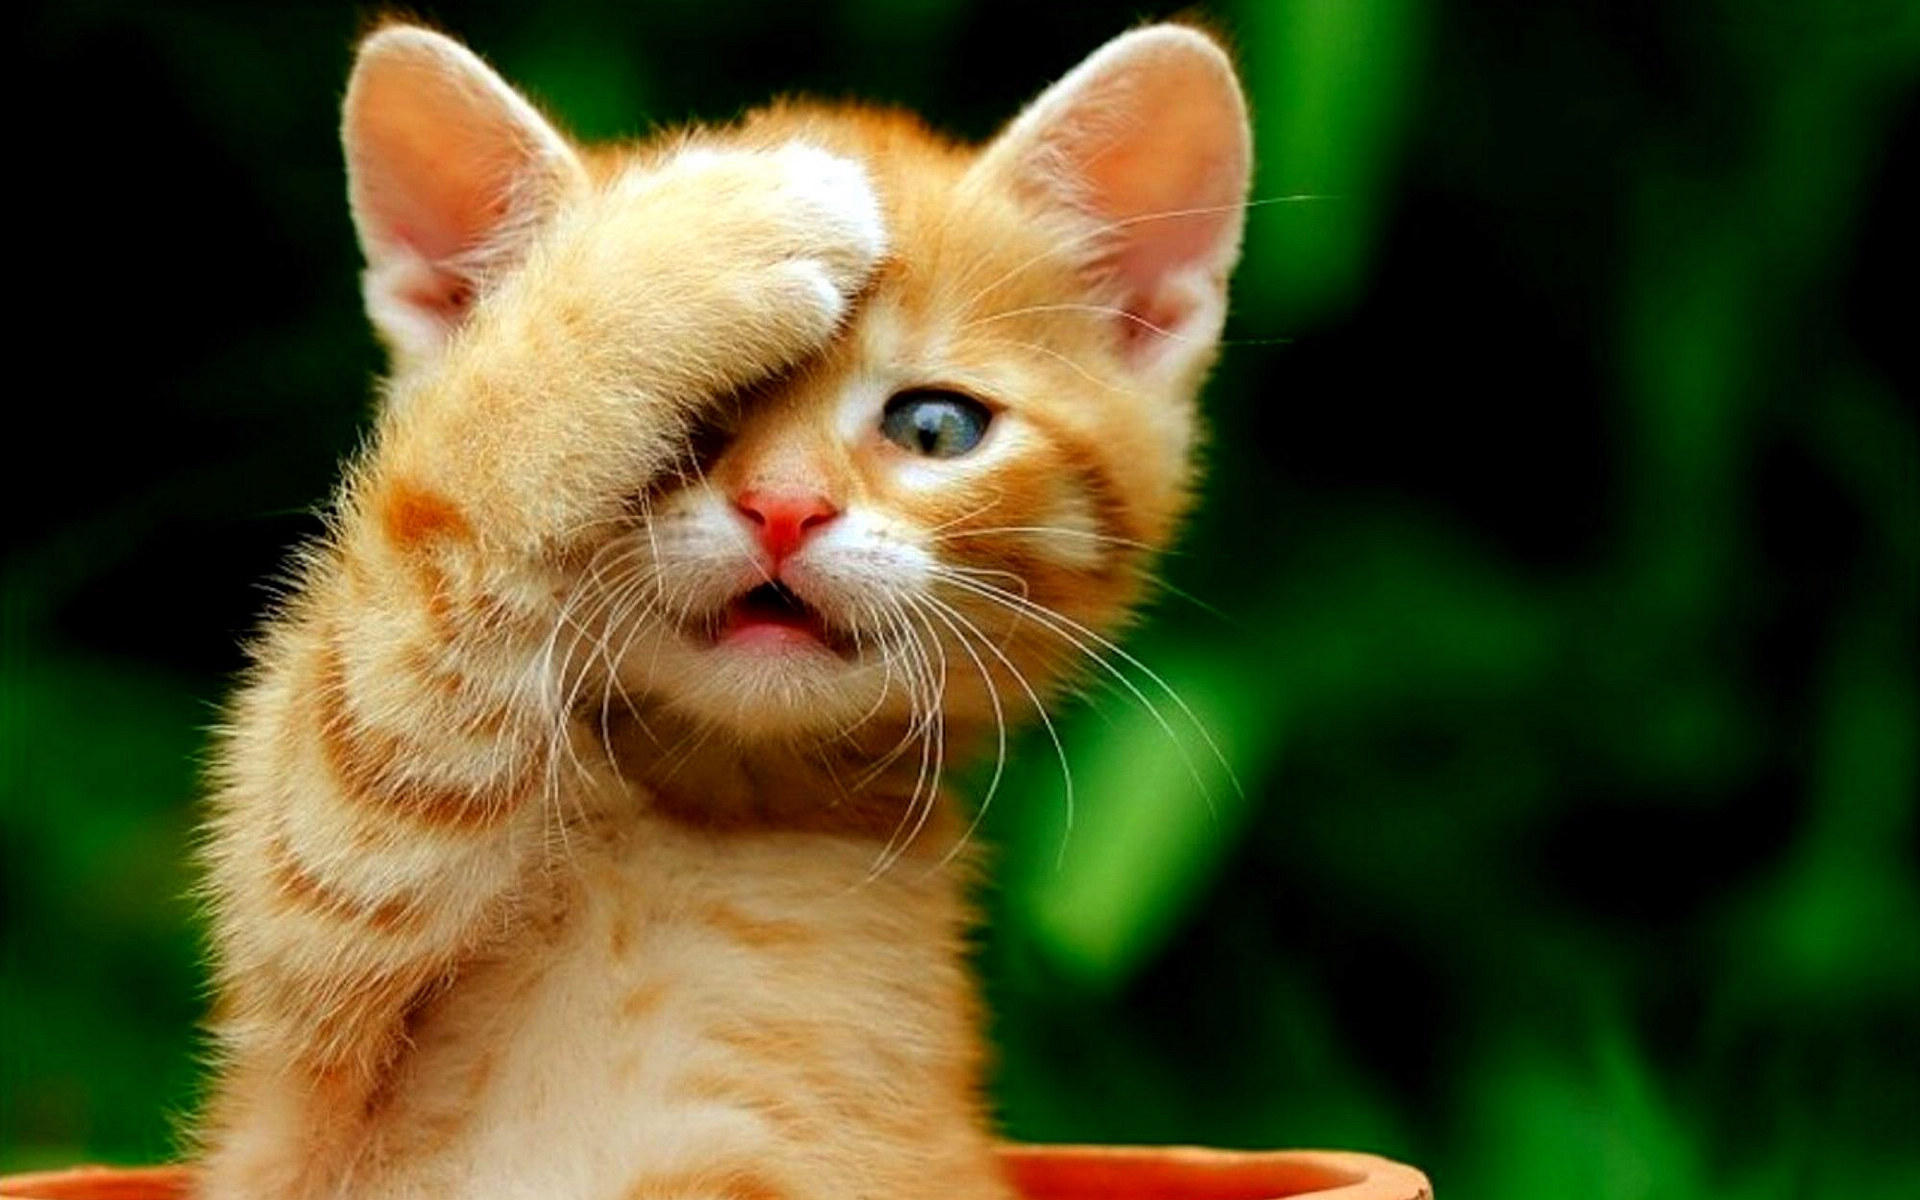 Cute Cats Wallpaper Hd 26 Wide Wallpaper Sharing Thoughts